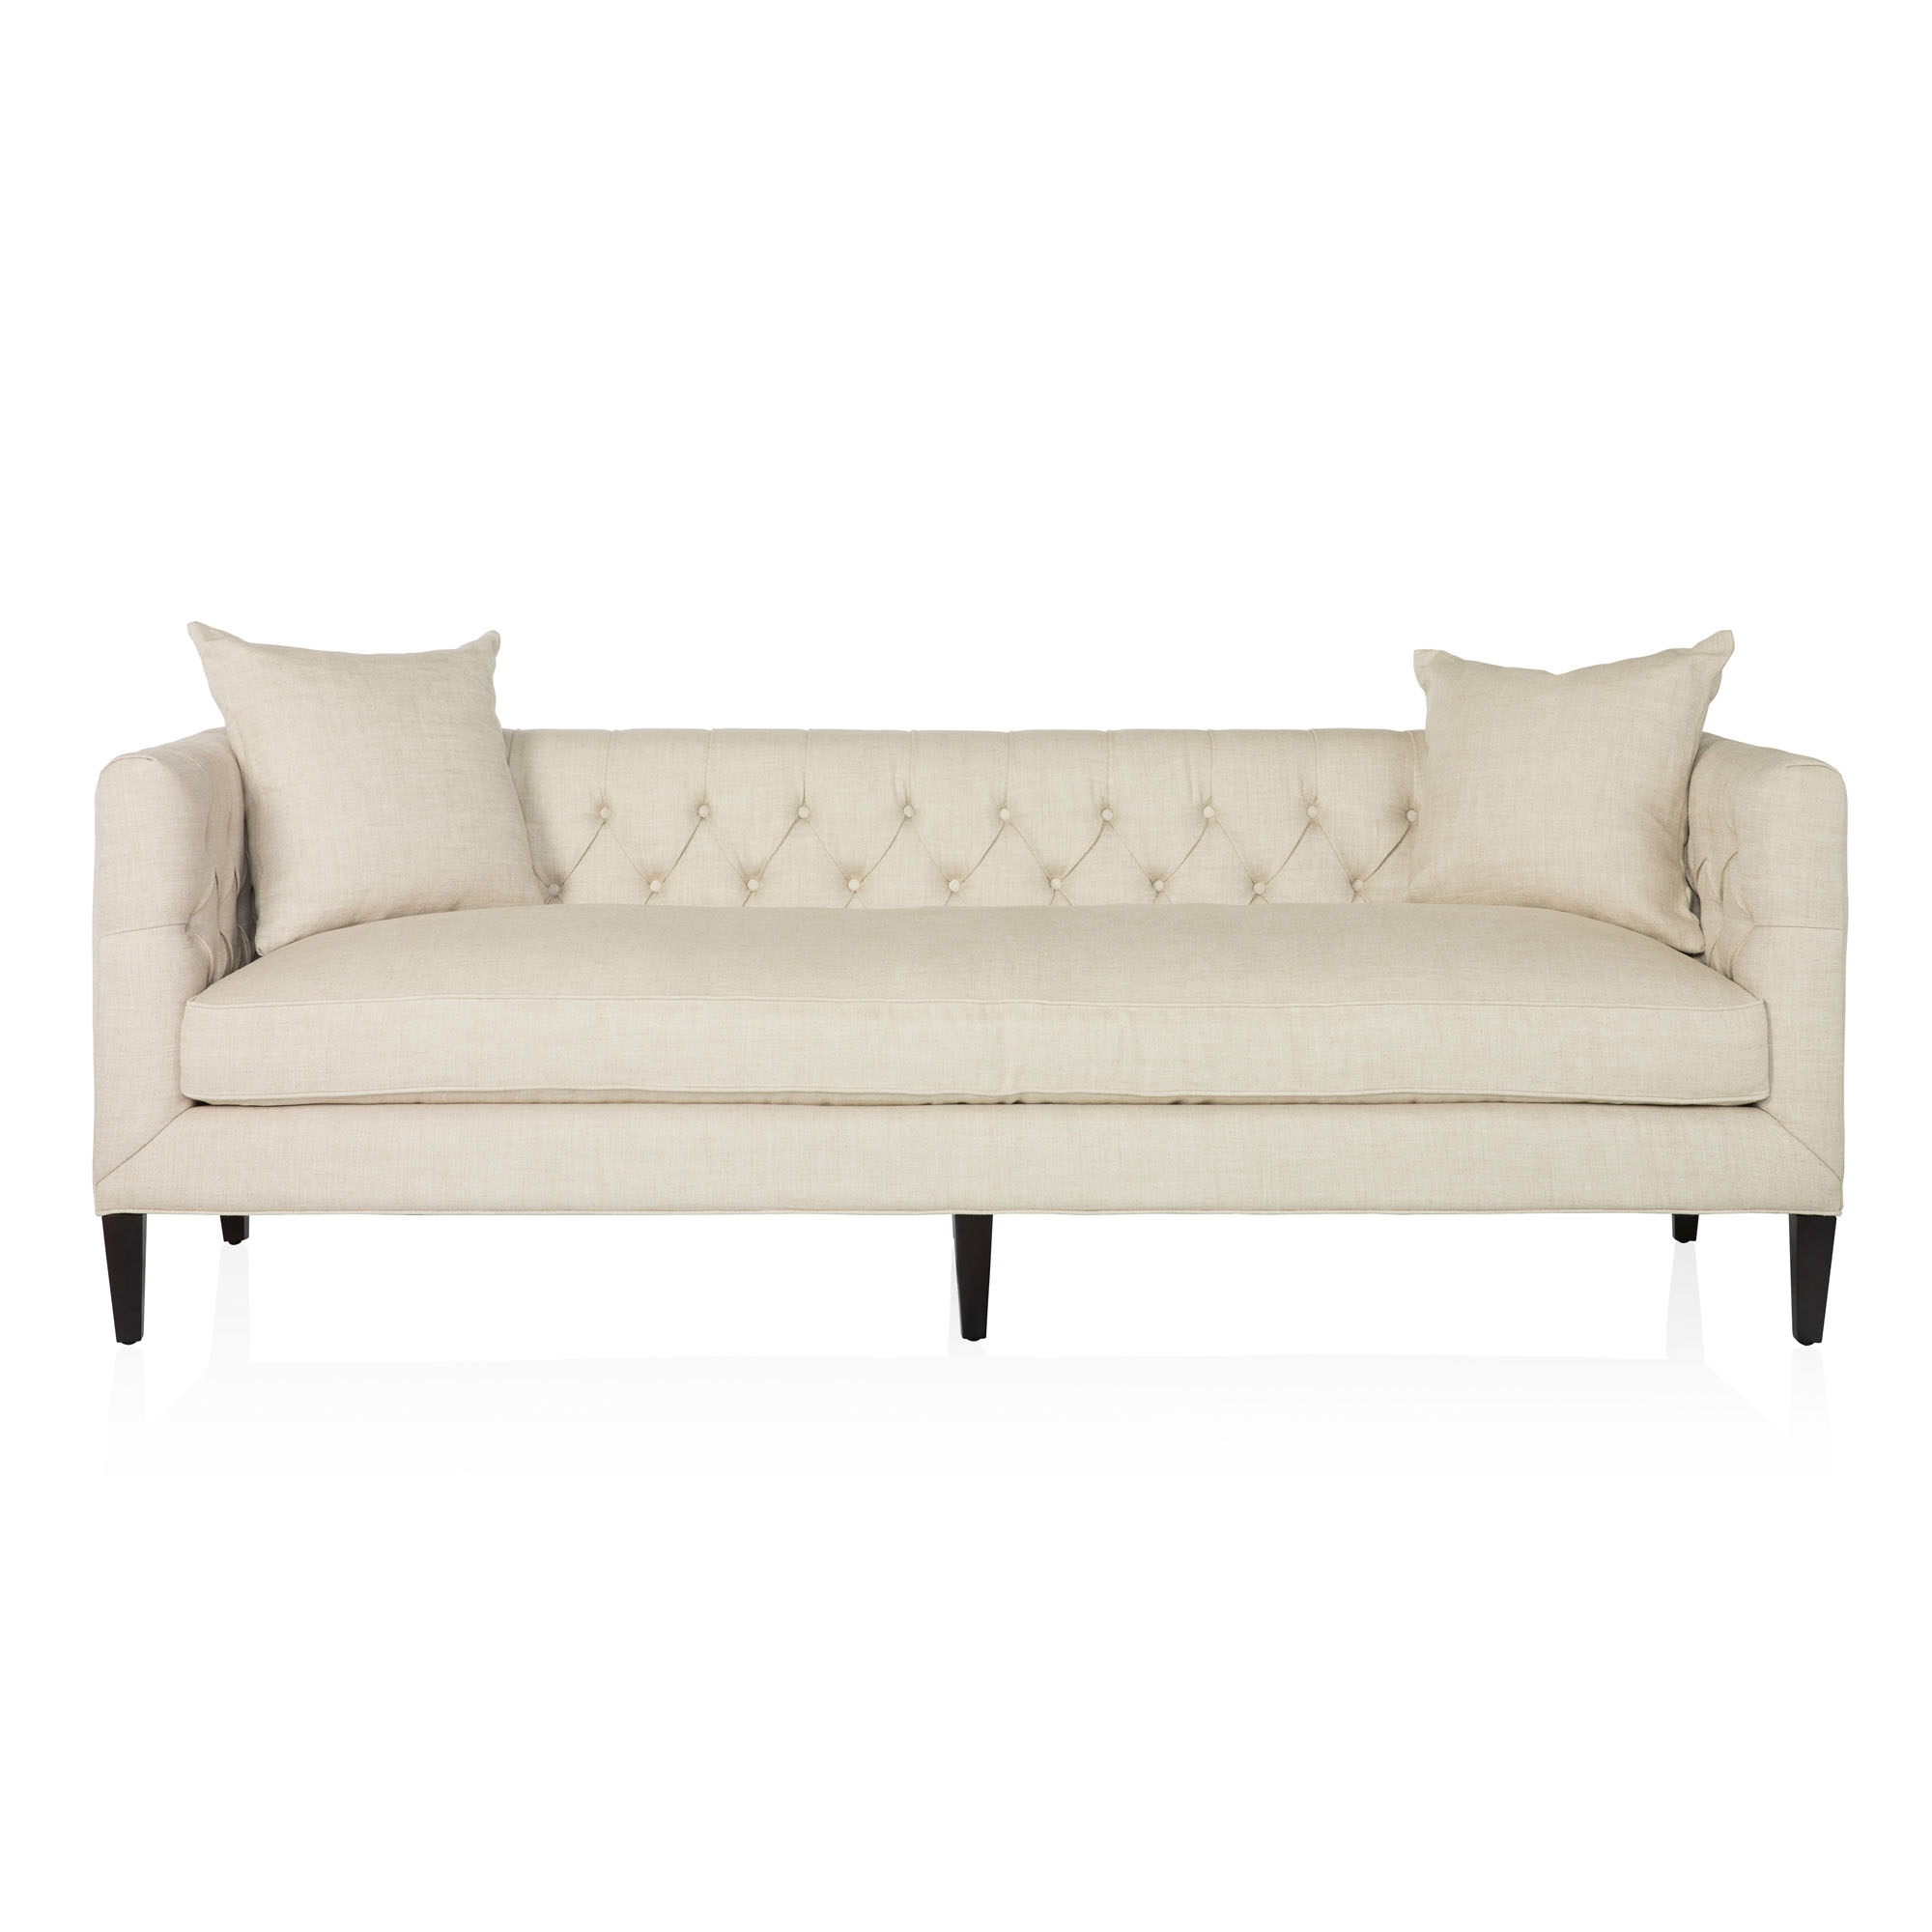 Stock sofas Dddy Chamonix Tufted sofa sofas Shop In Stock